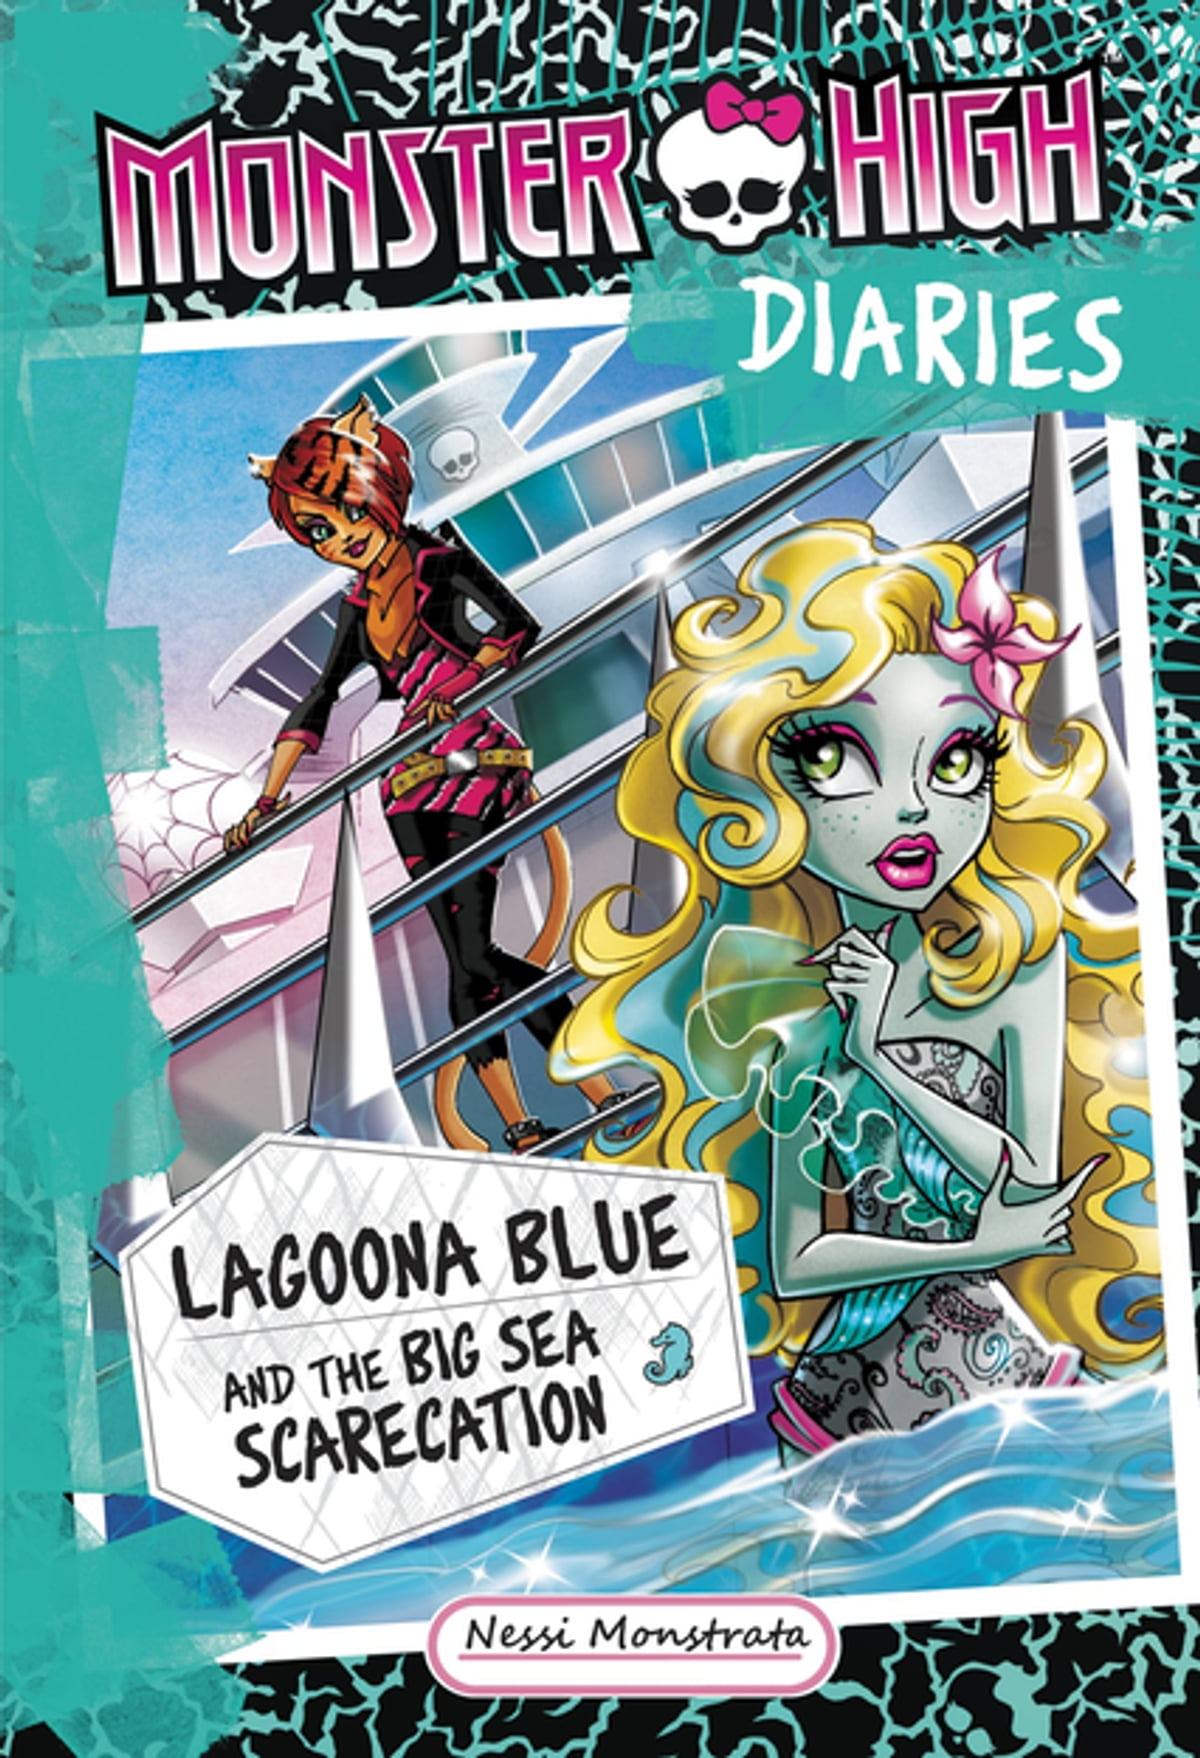 Libros Monster High Monster High Diaries Lagoona Blue And The Big Sea Scarecation Ebooks By Nessi Monstrata Rakuten Kobo